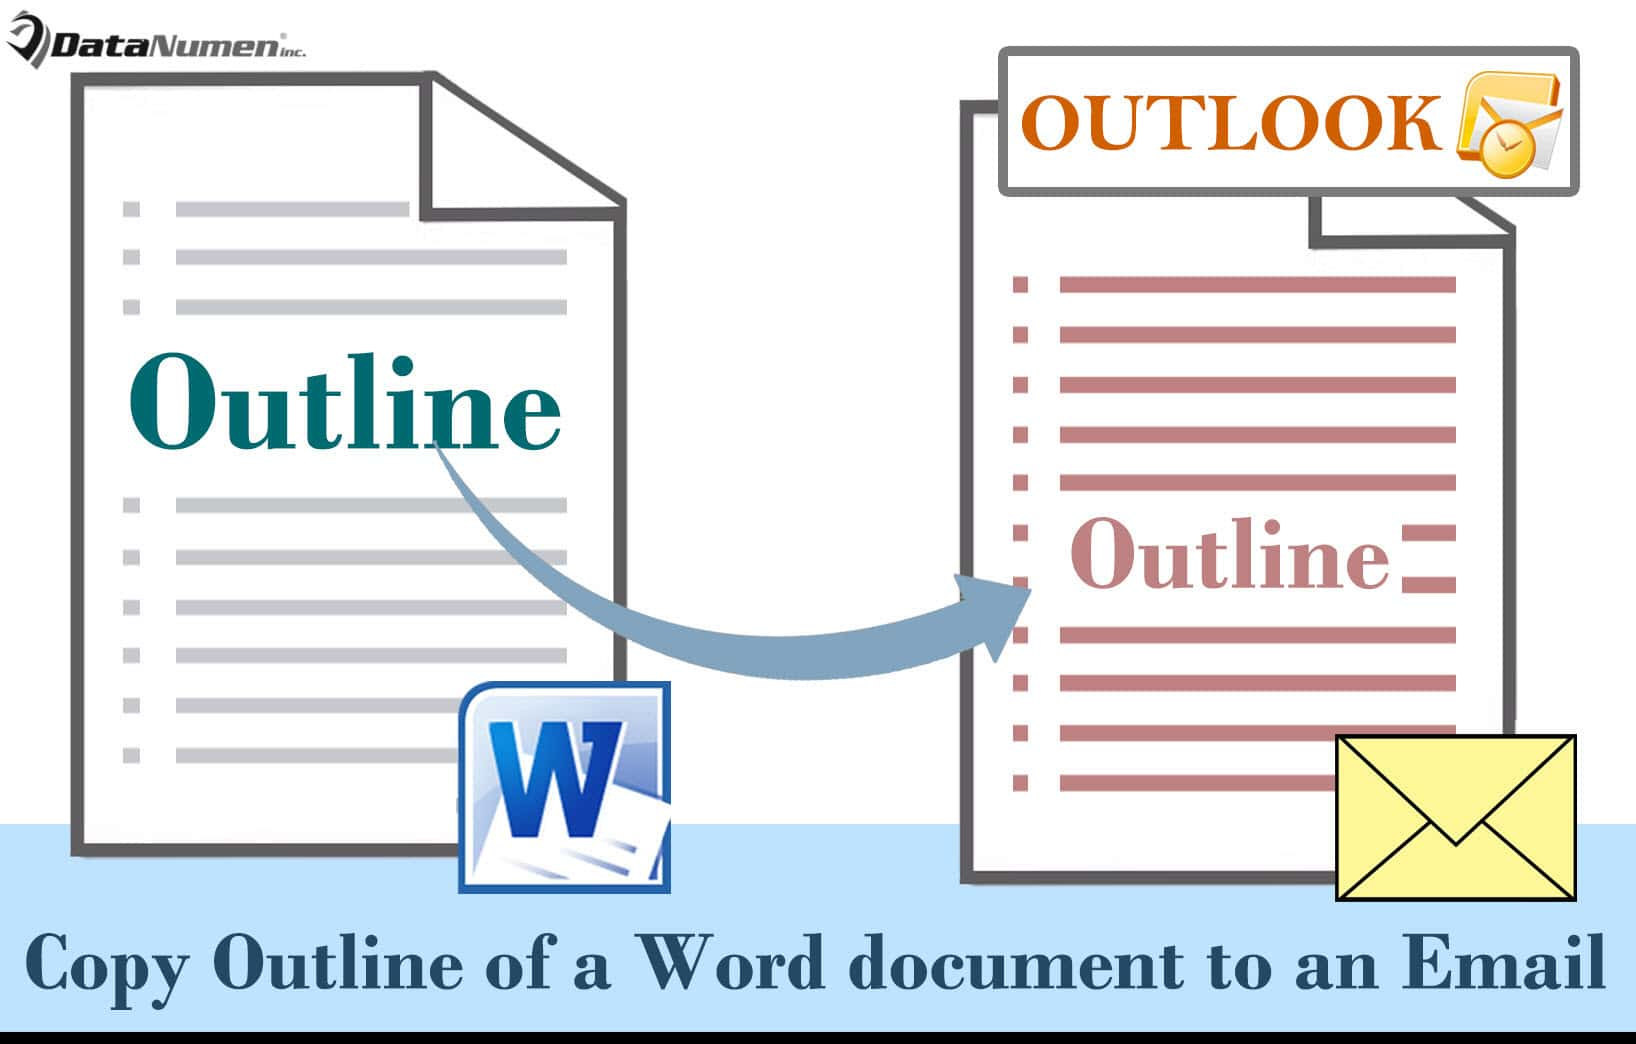 Quickly Copy the Outline of a Word Document to an Outlook Email